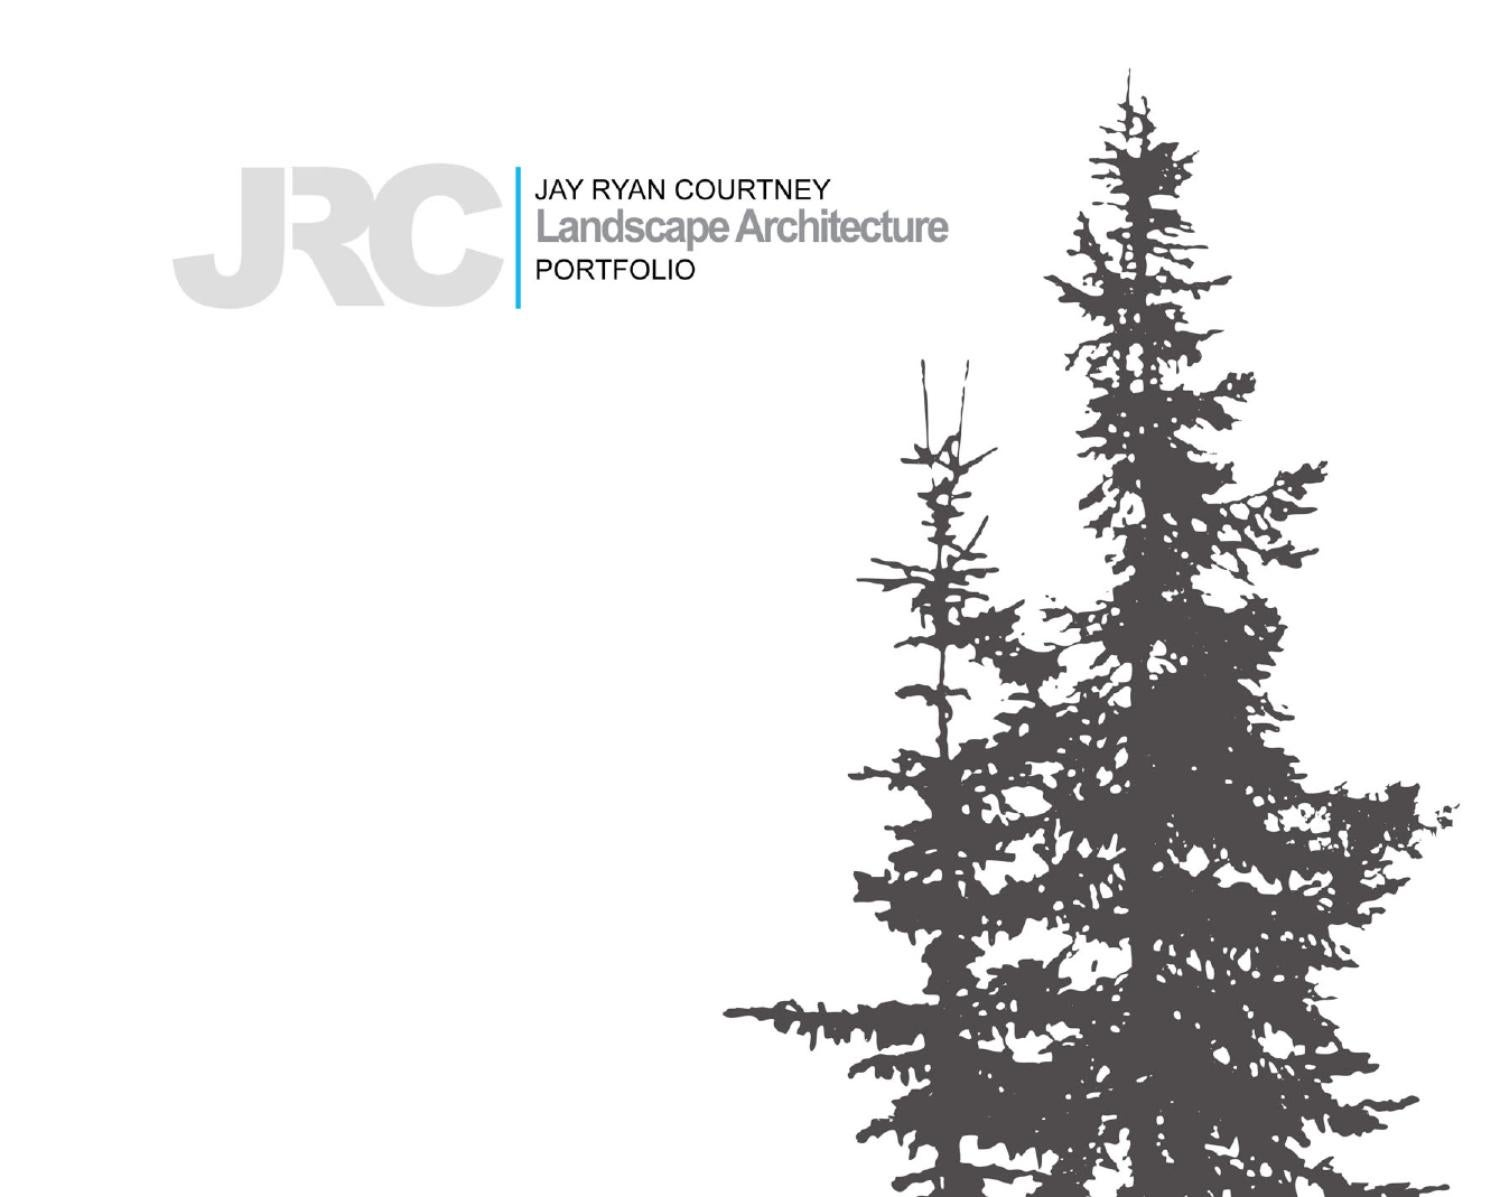 jay ryan courtney landscape architecture portfolio by jay courtney